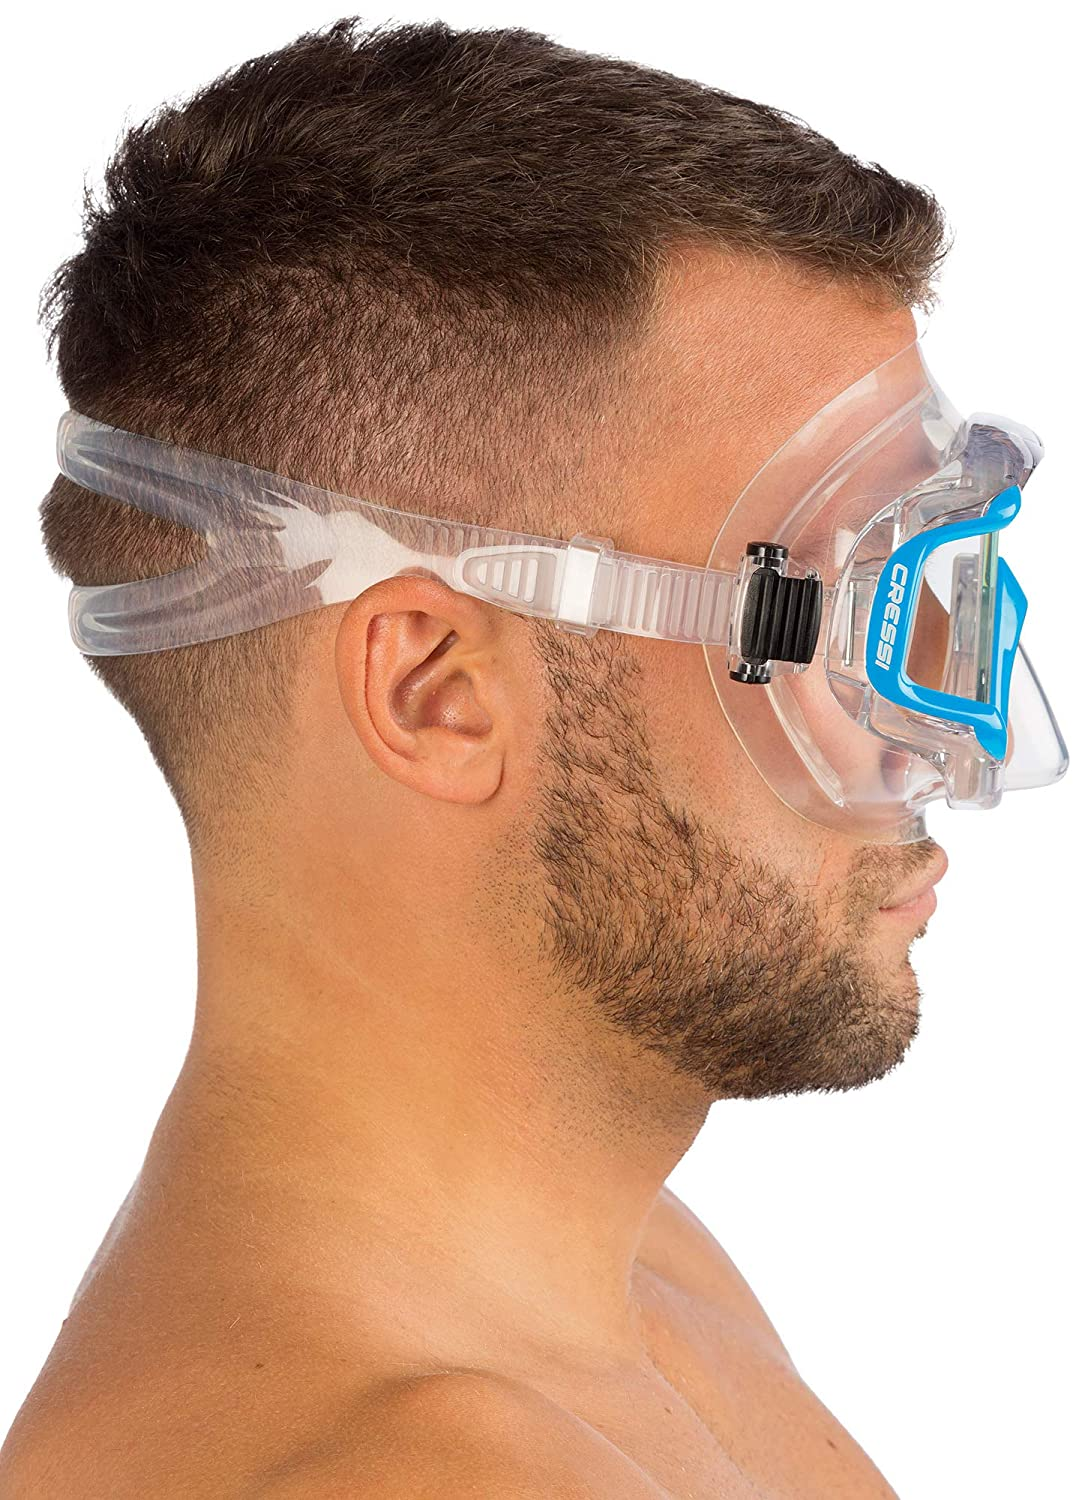 Pano 3 /& Supernova Dry Scuba Diving designed in Italy Cressi Panoramic Wide View Mask /& Dry Snorkel Kit for Snorkeling